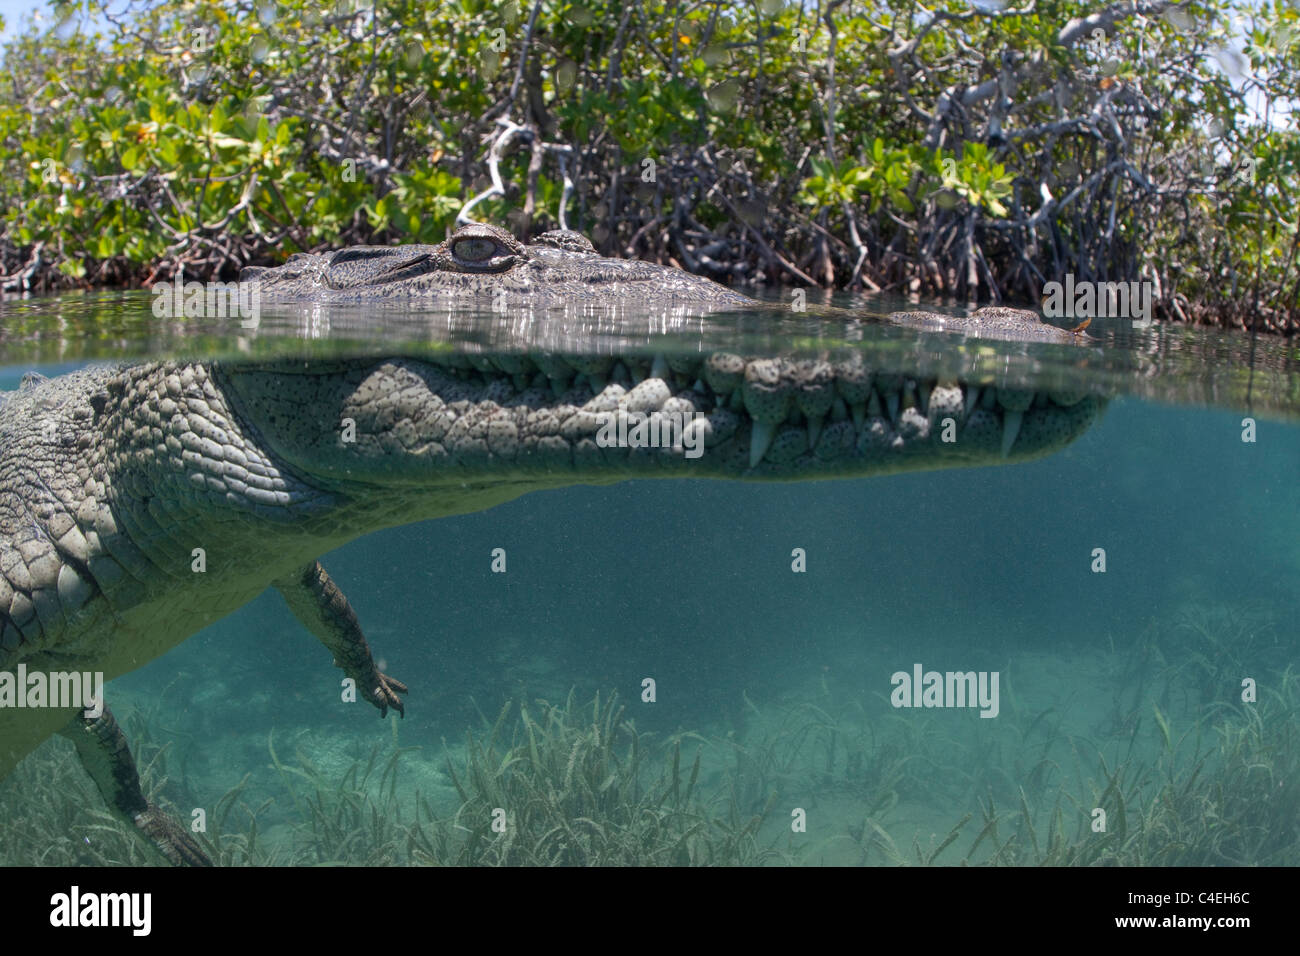 A split-water view of a Cuban Crocodile swimming through a mangrove forest off the coast of Cuba. - Stock Image